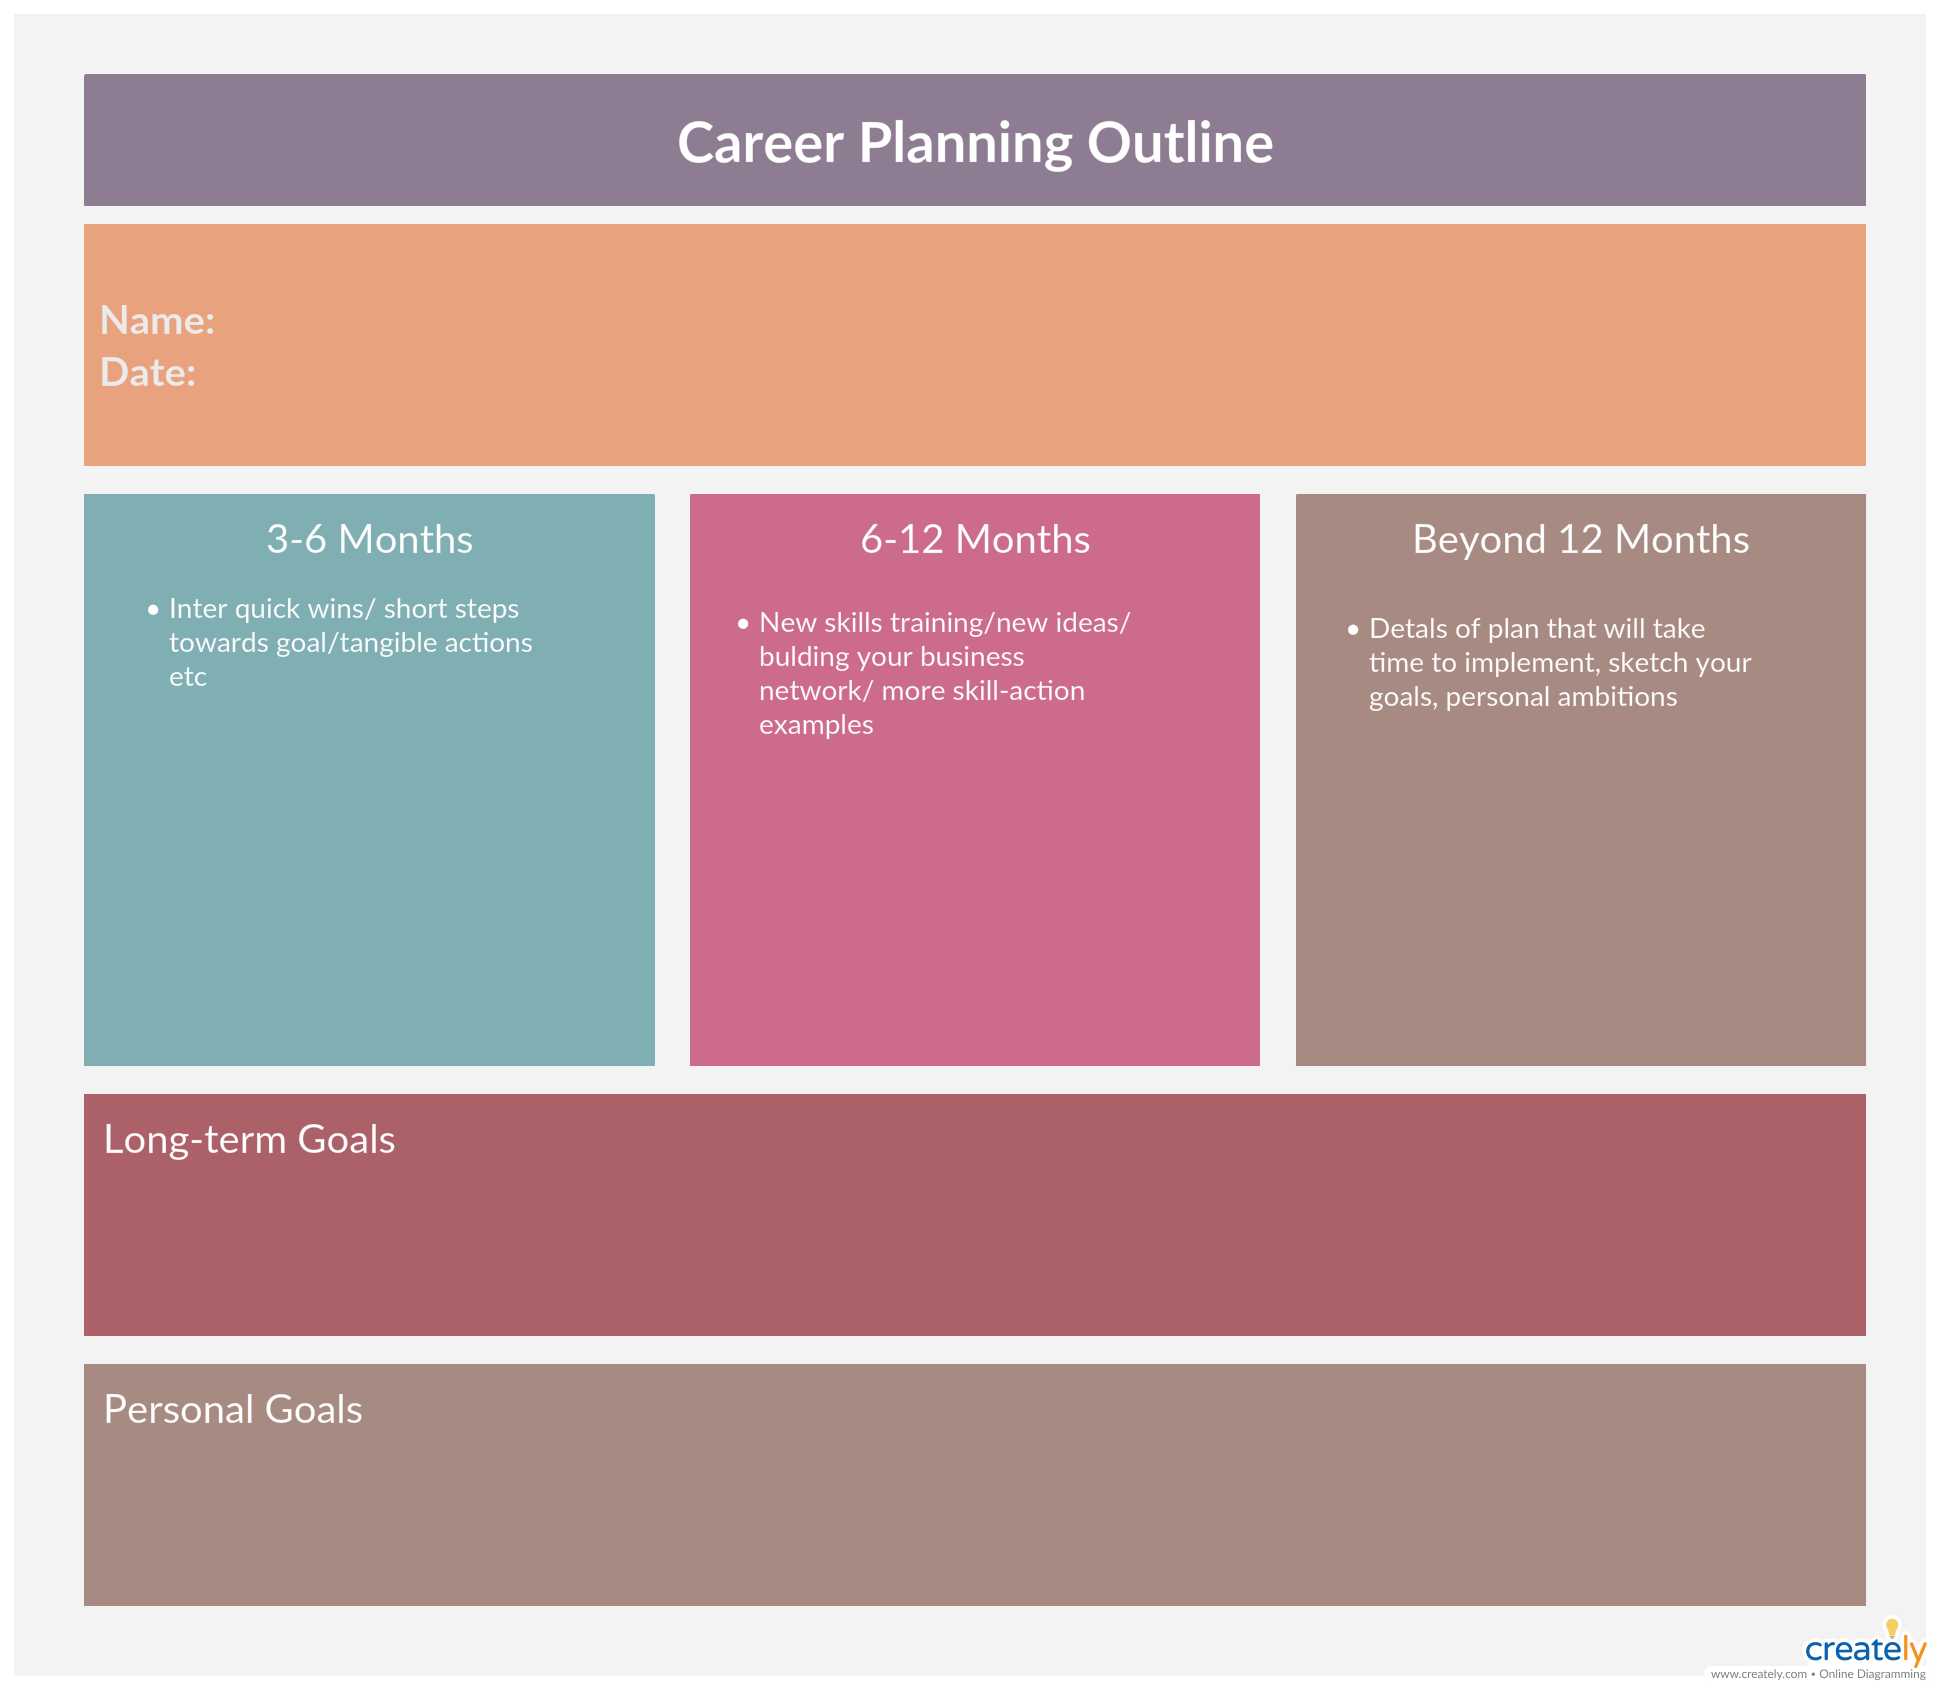 Career Plan Template To Produce Your Own Career Action Plan  You Can Edit This Template And